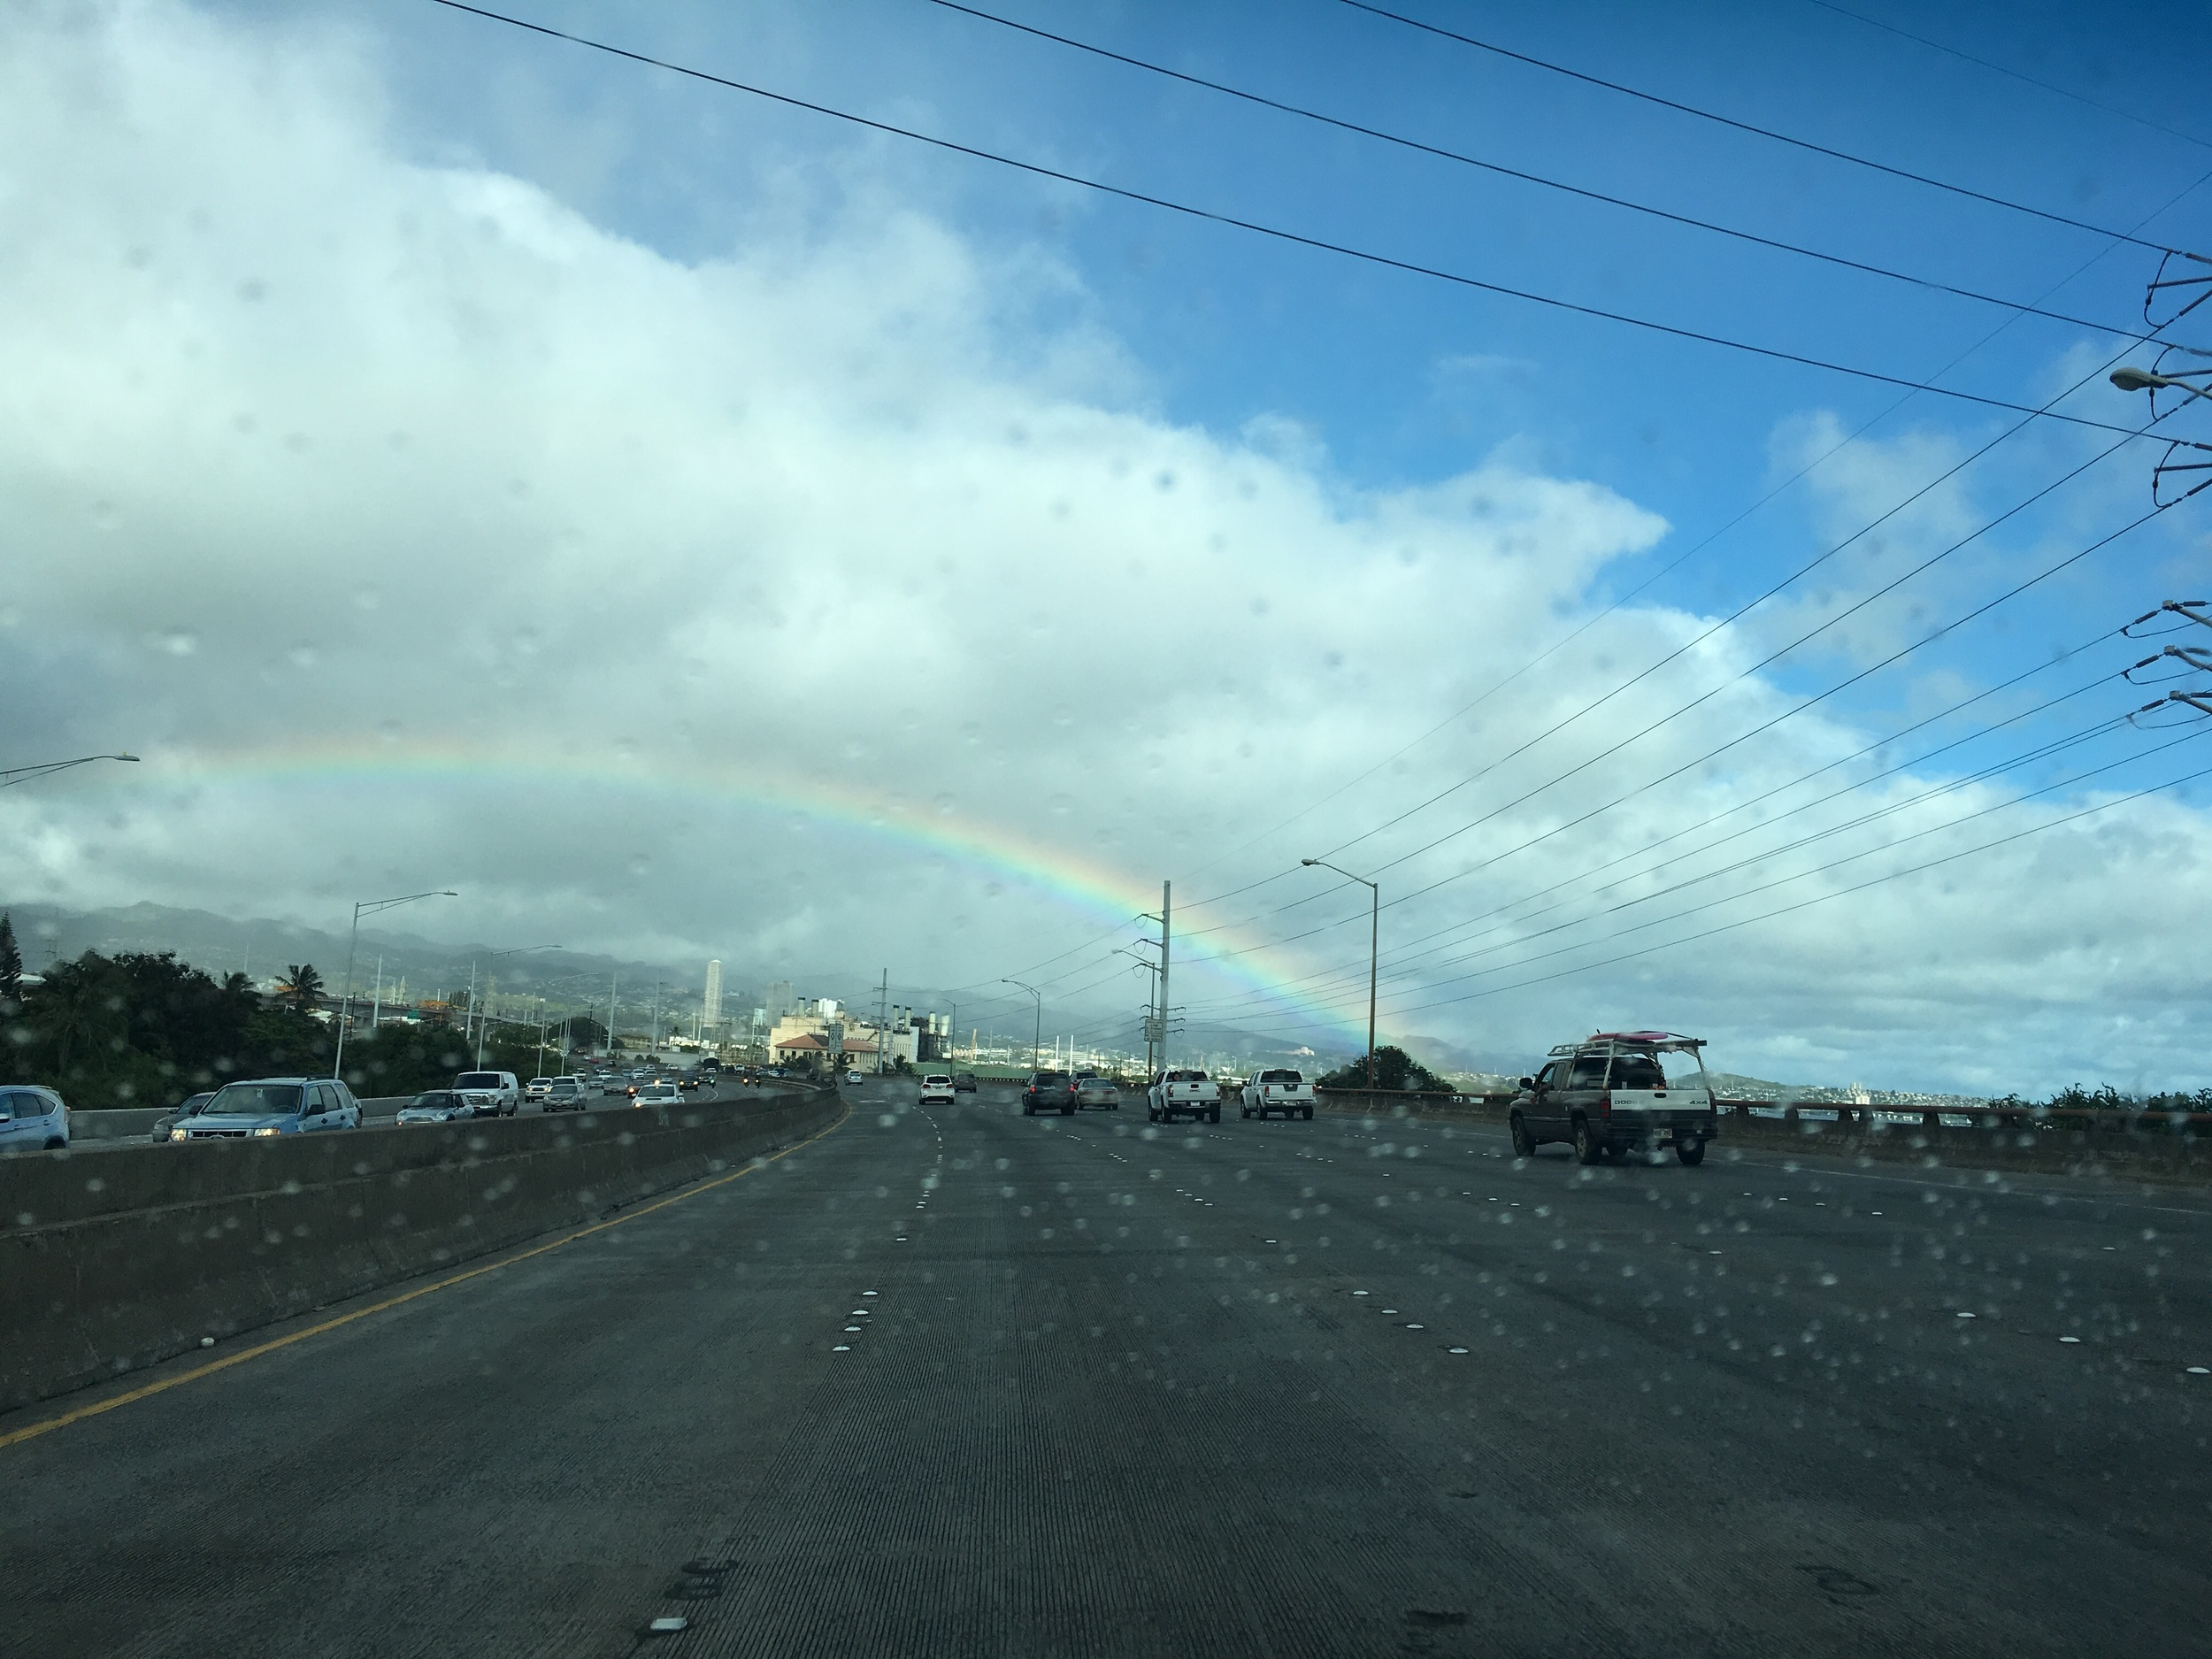 One of the awesome things we might take for granted in Hawaii, rainbows.